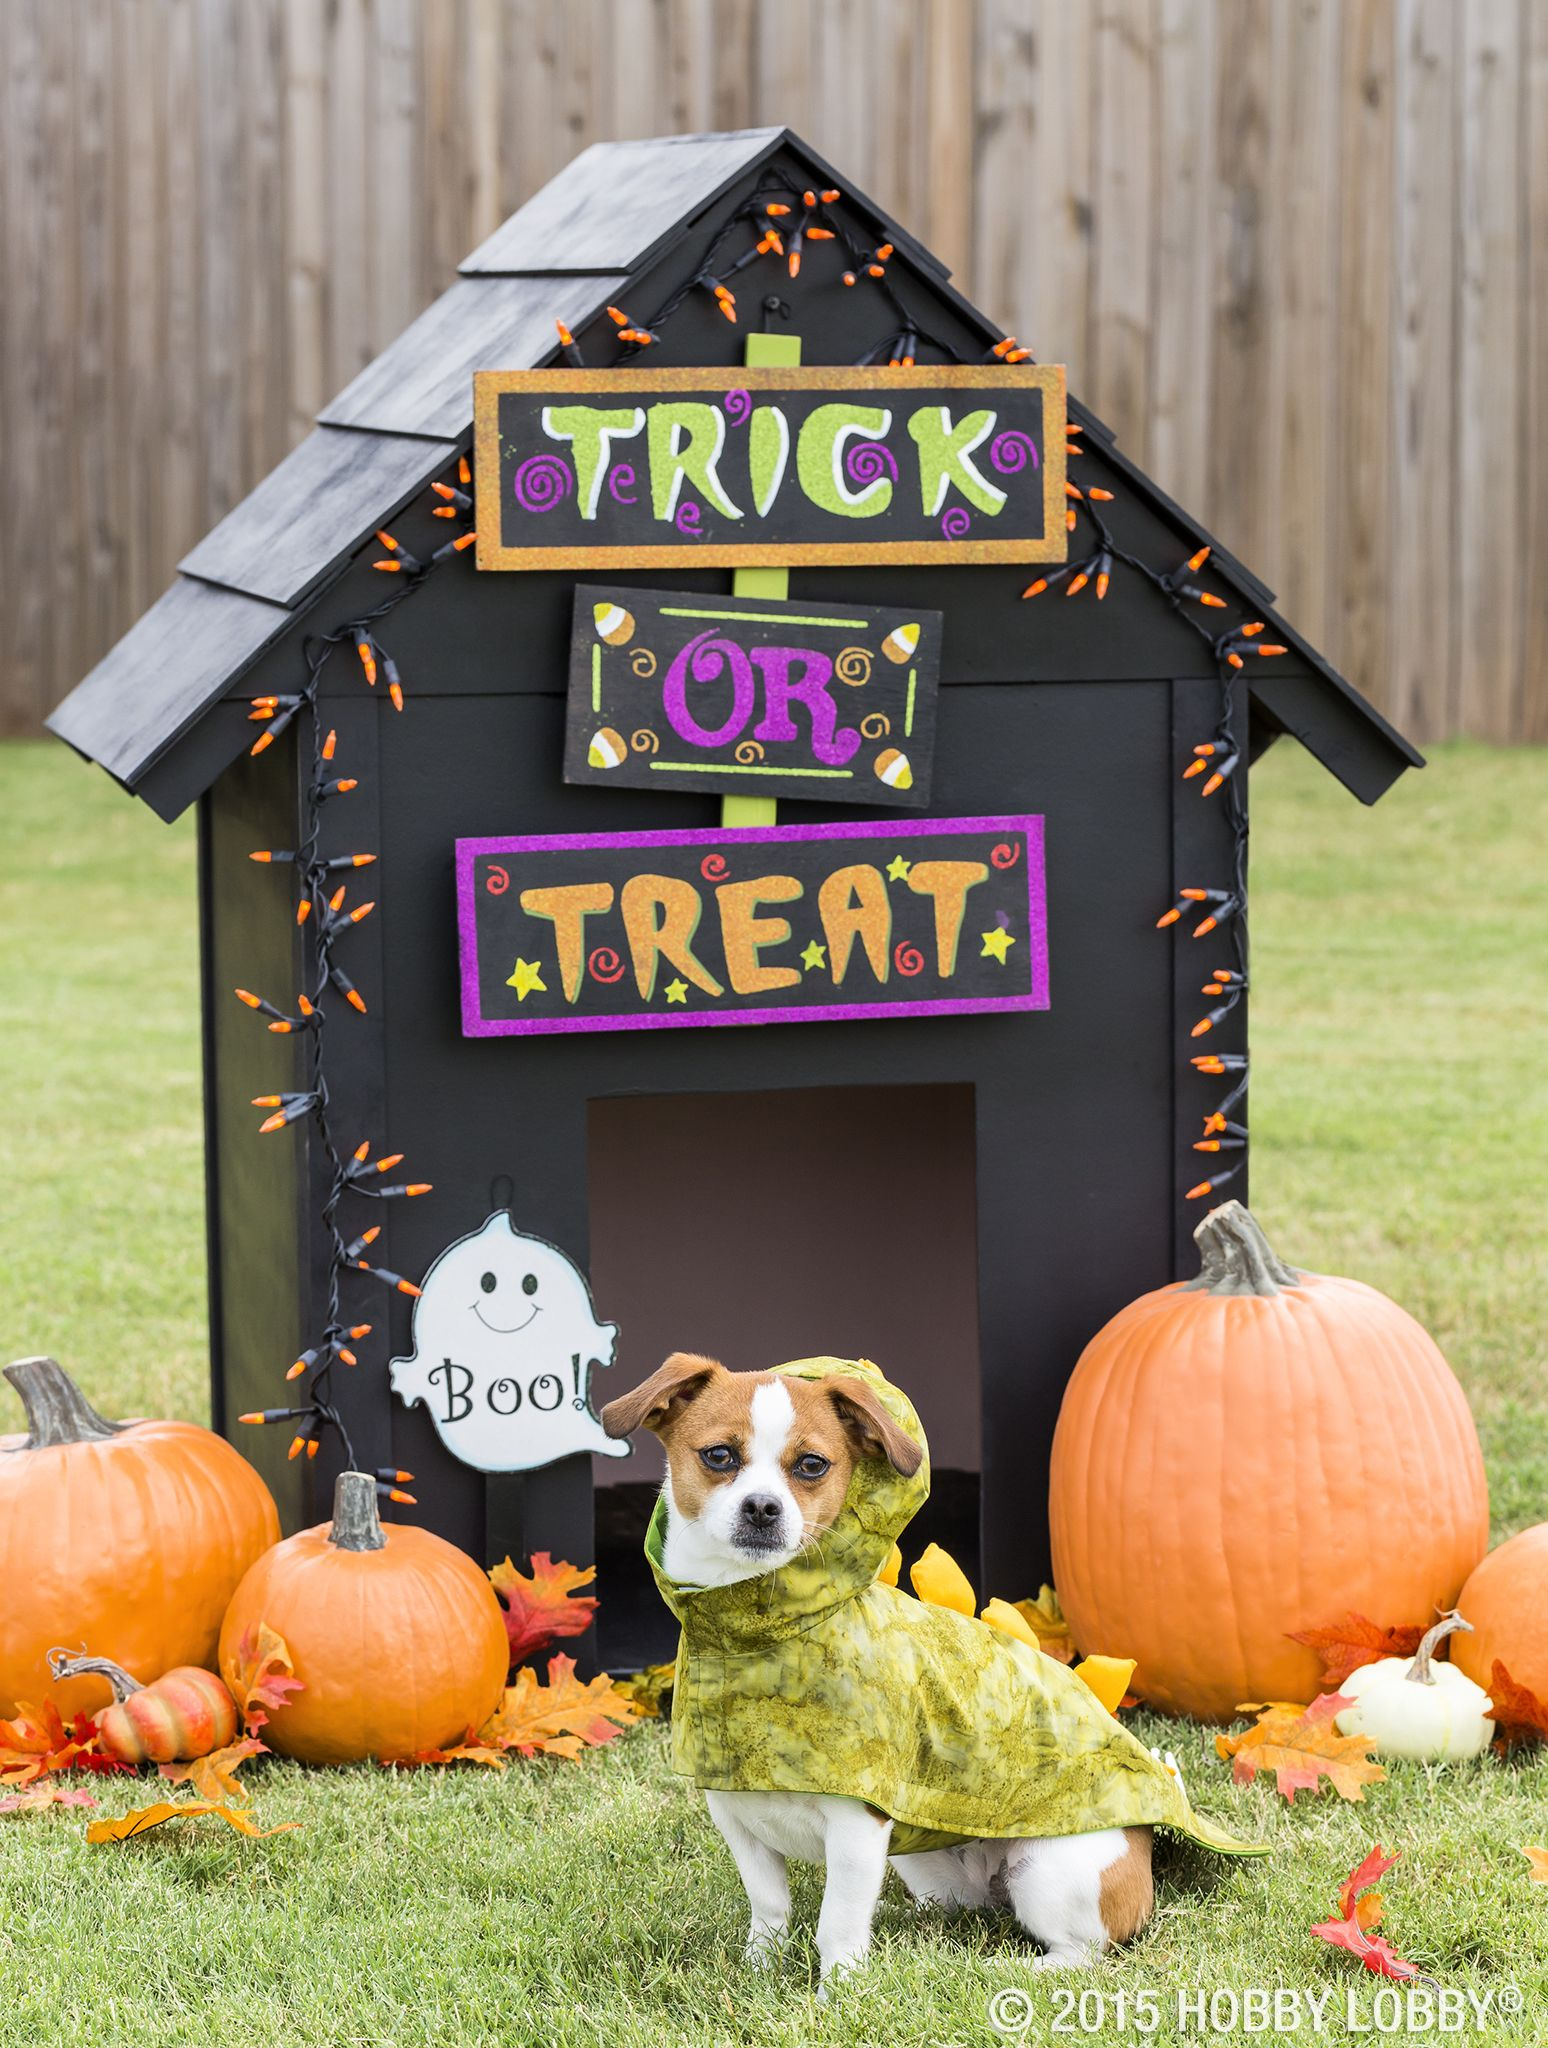 This Tricked Out Dog House And Homemade Costume Is Sure To